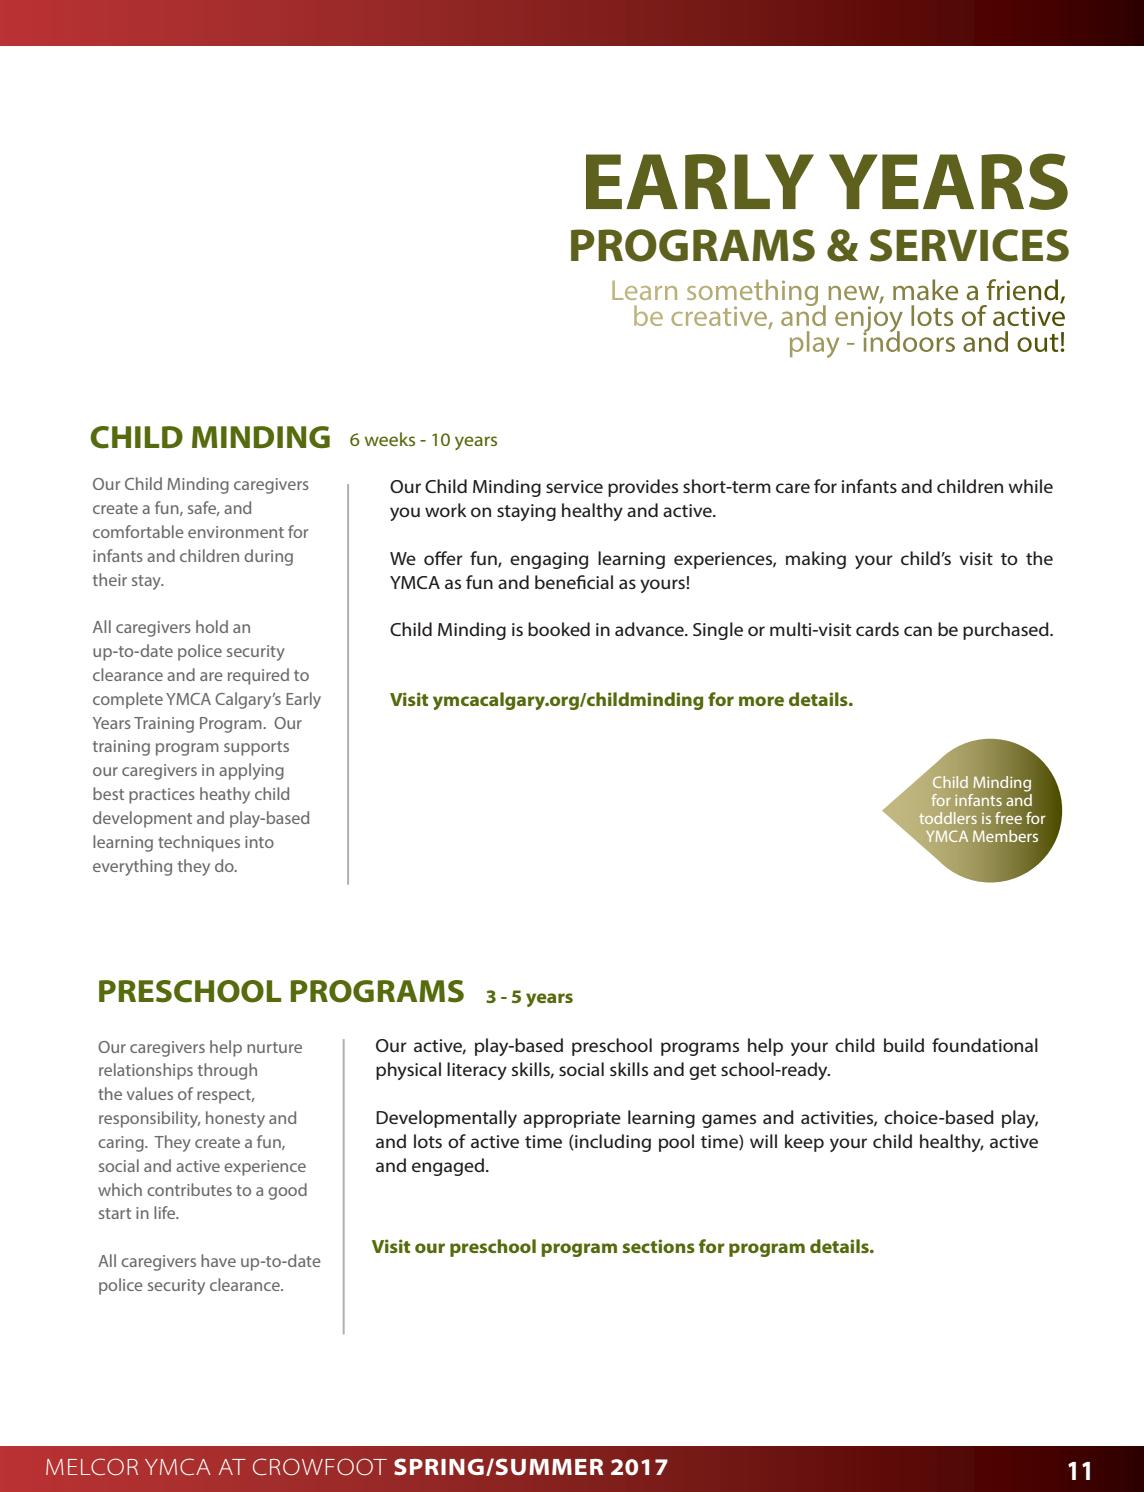 Melcor YMCA at Crowfoot Spring/Summer Guide 2017 by YMCA